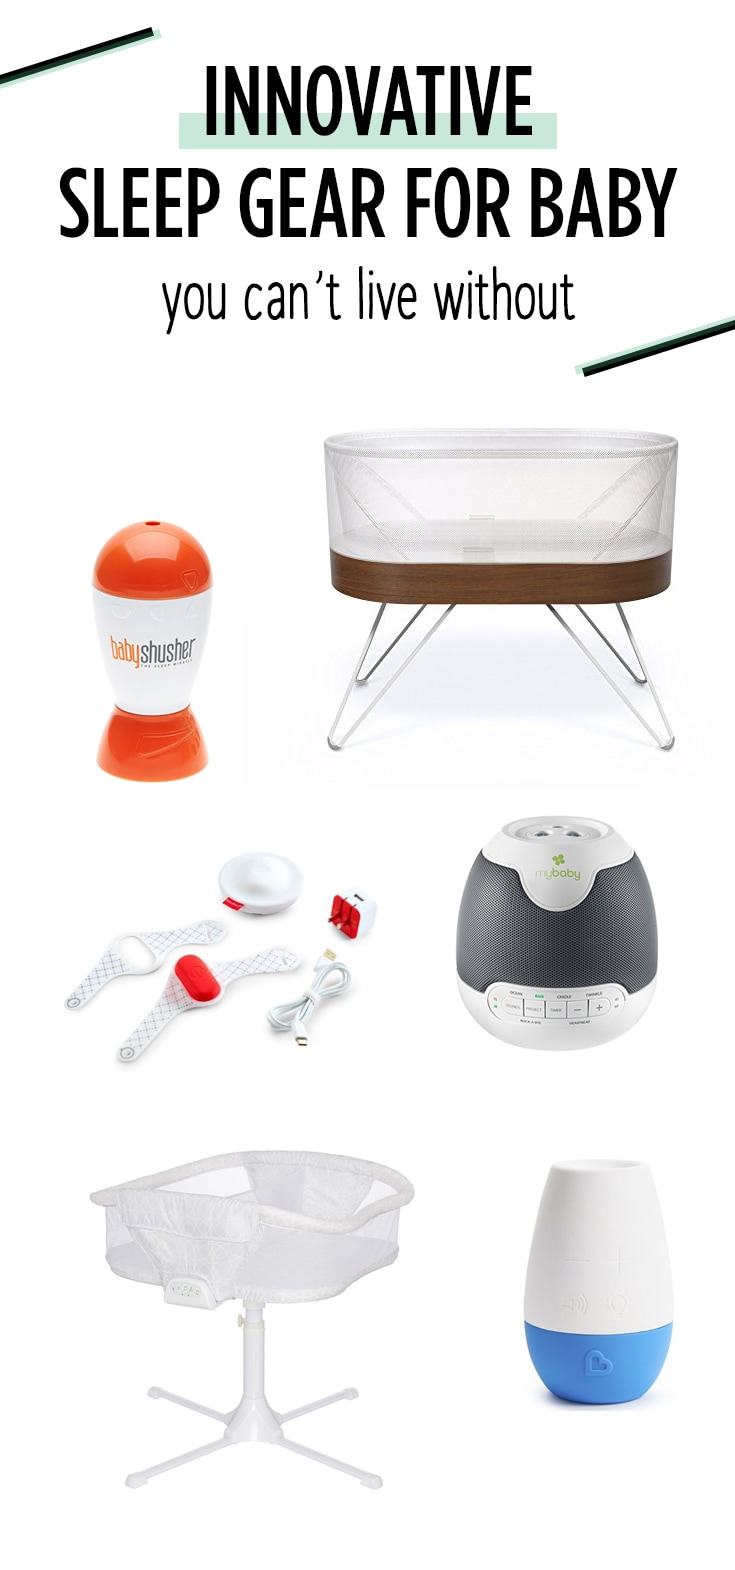 These products aim to get baby safely to sleep faster, and allow them to sleep longer.